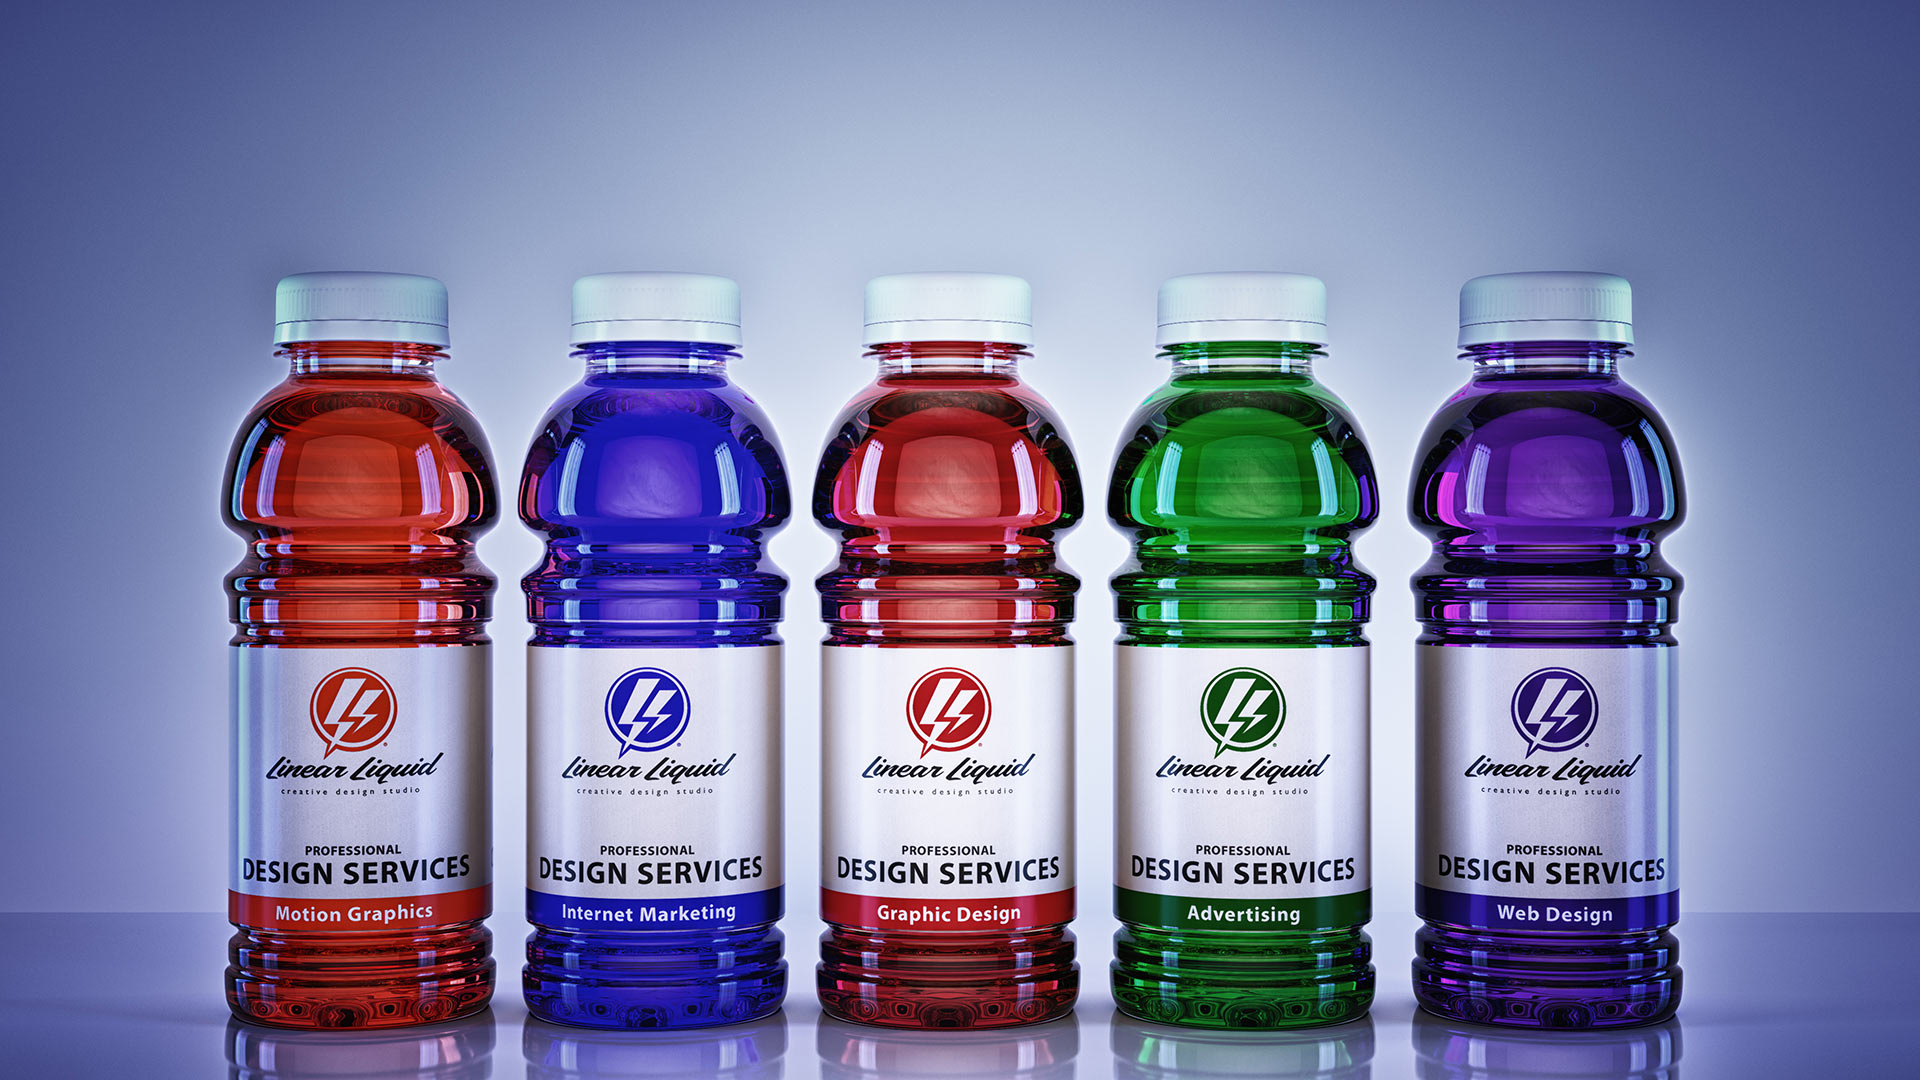 Linear Liquid Product Shot